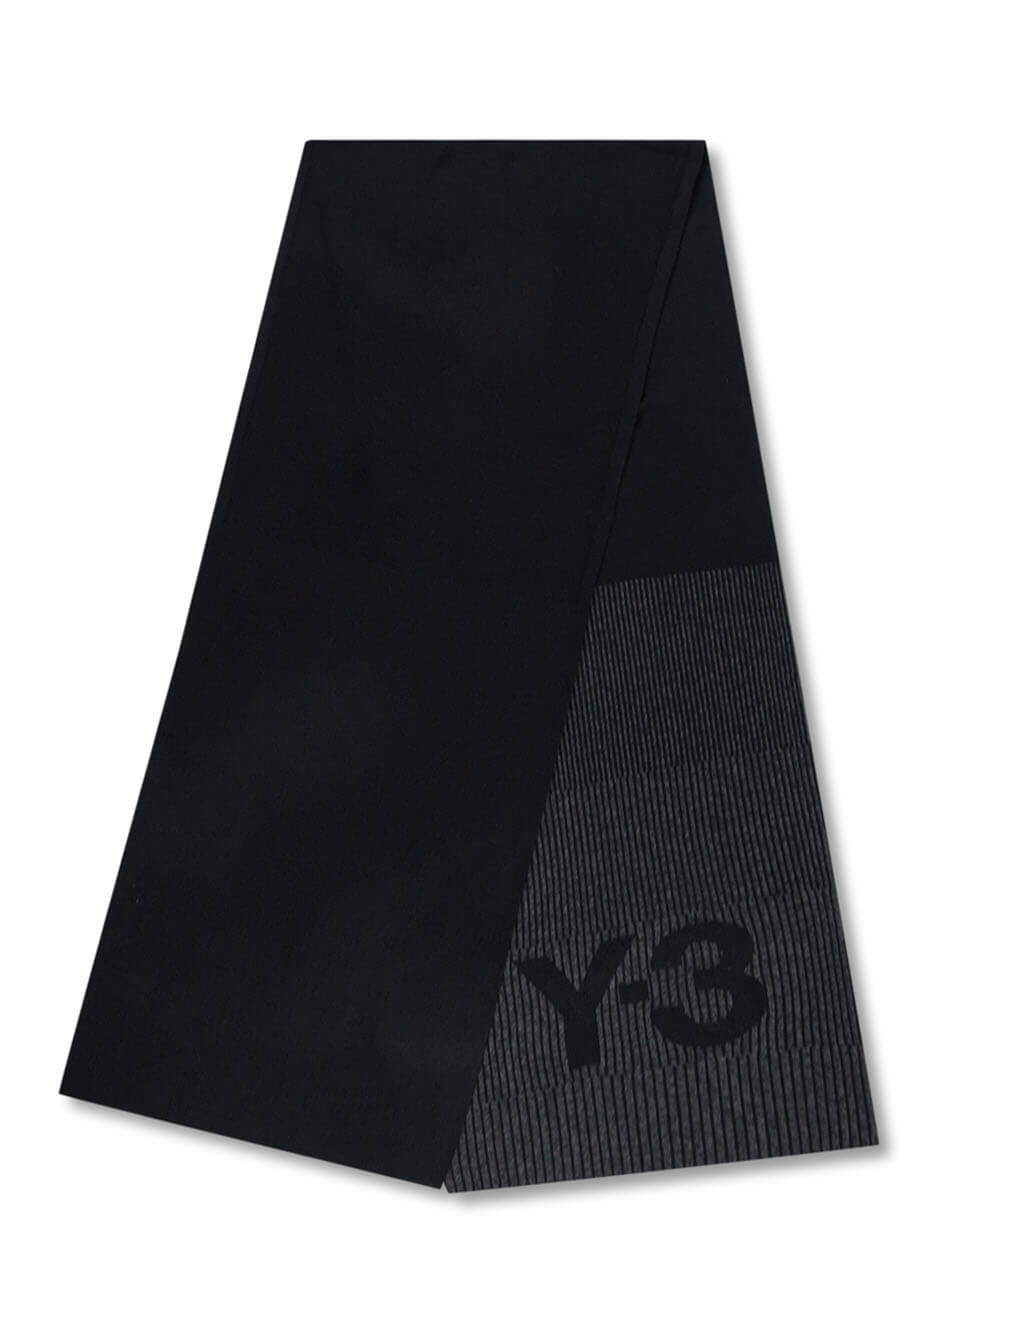 Men's Y-3 Chapter One Reflective Scarf in Black. GK0637